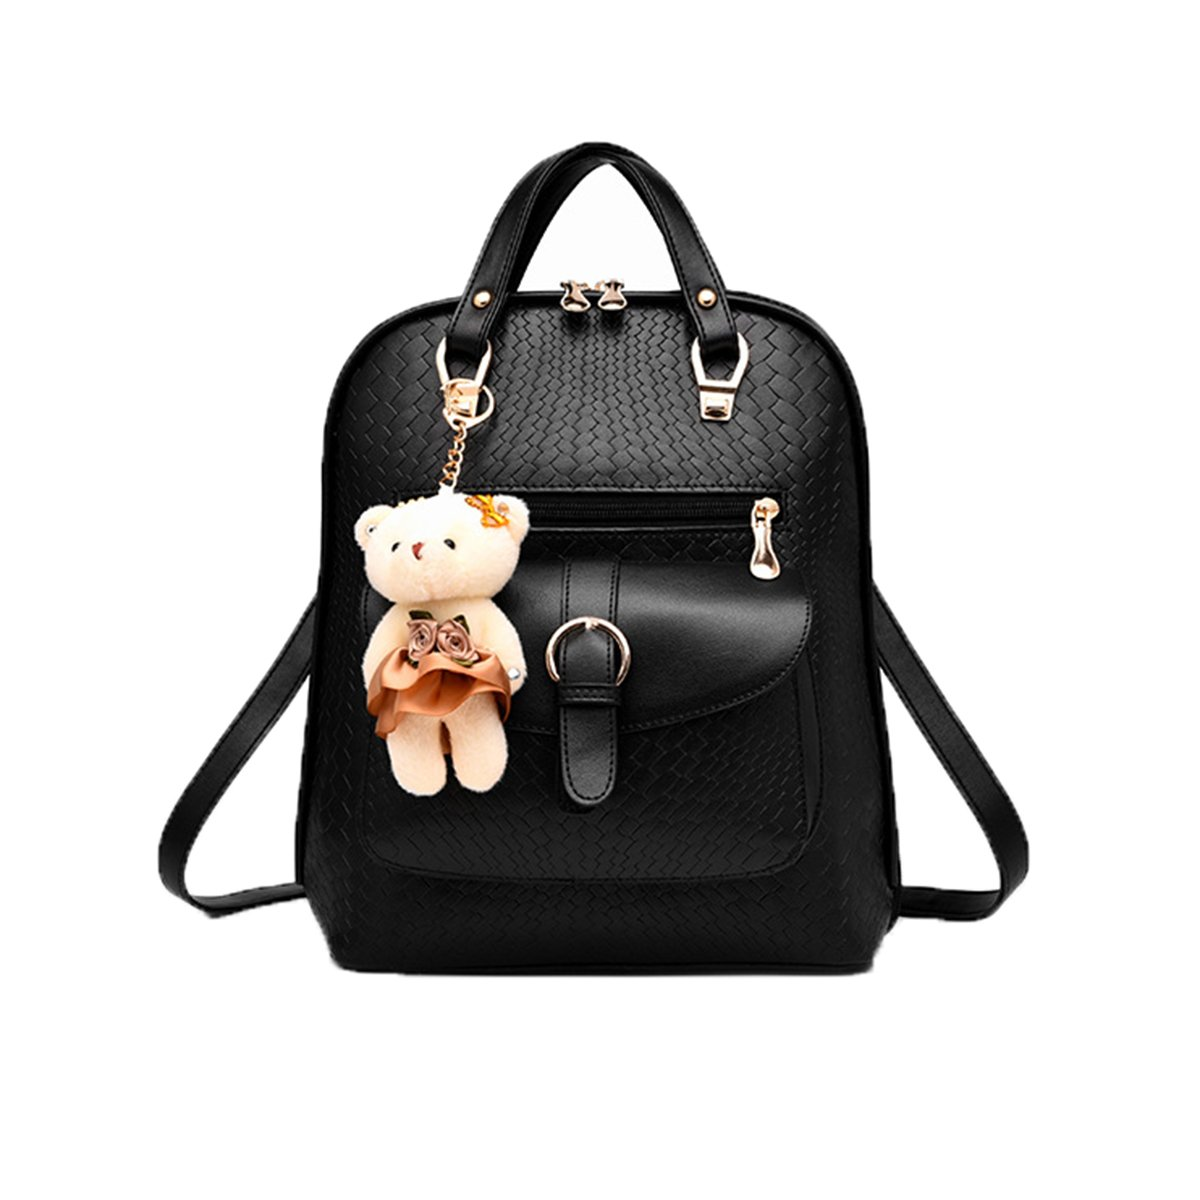 Women Backpack,PU Shoulder Bag, Cute Satchel Knapsack For Teenagers Girls With Bear Key Chain Black